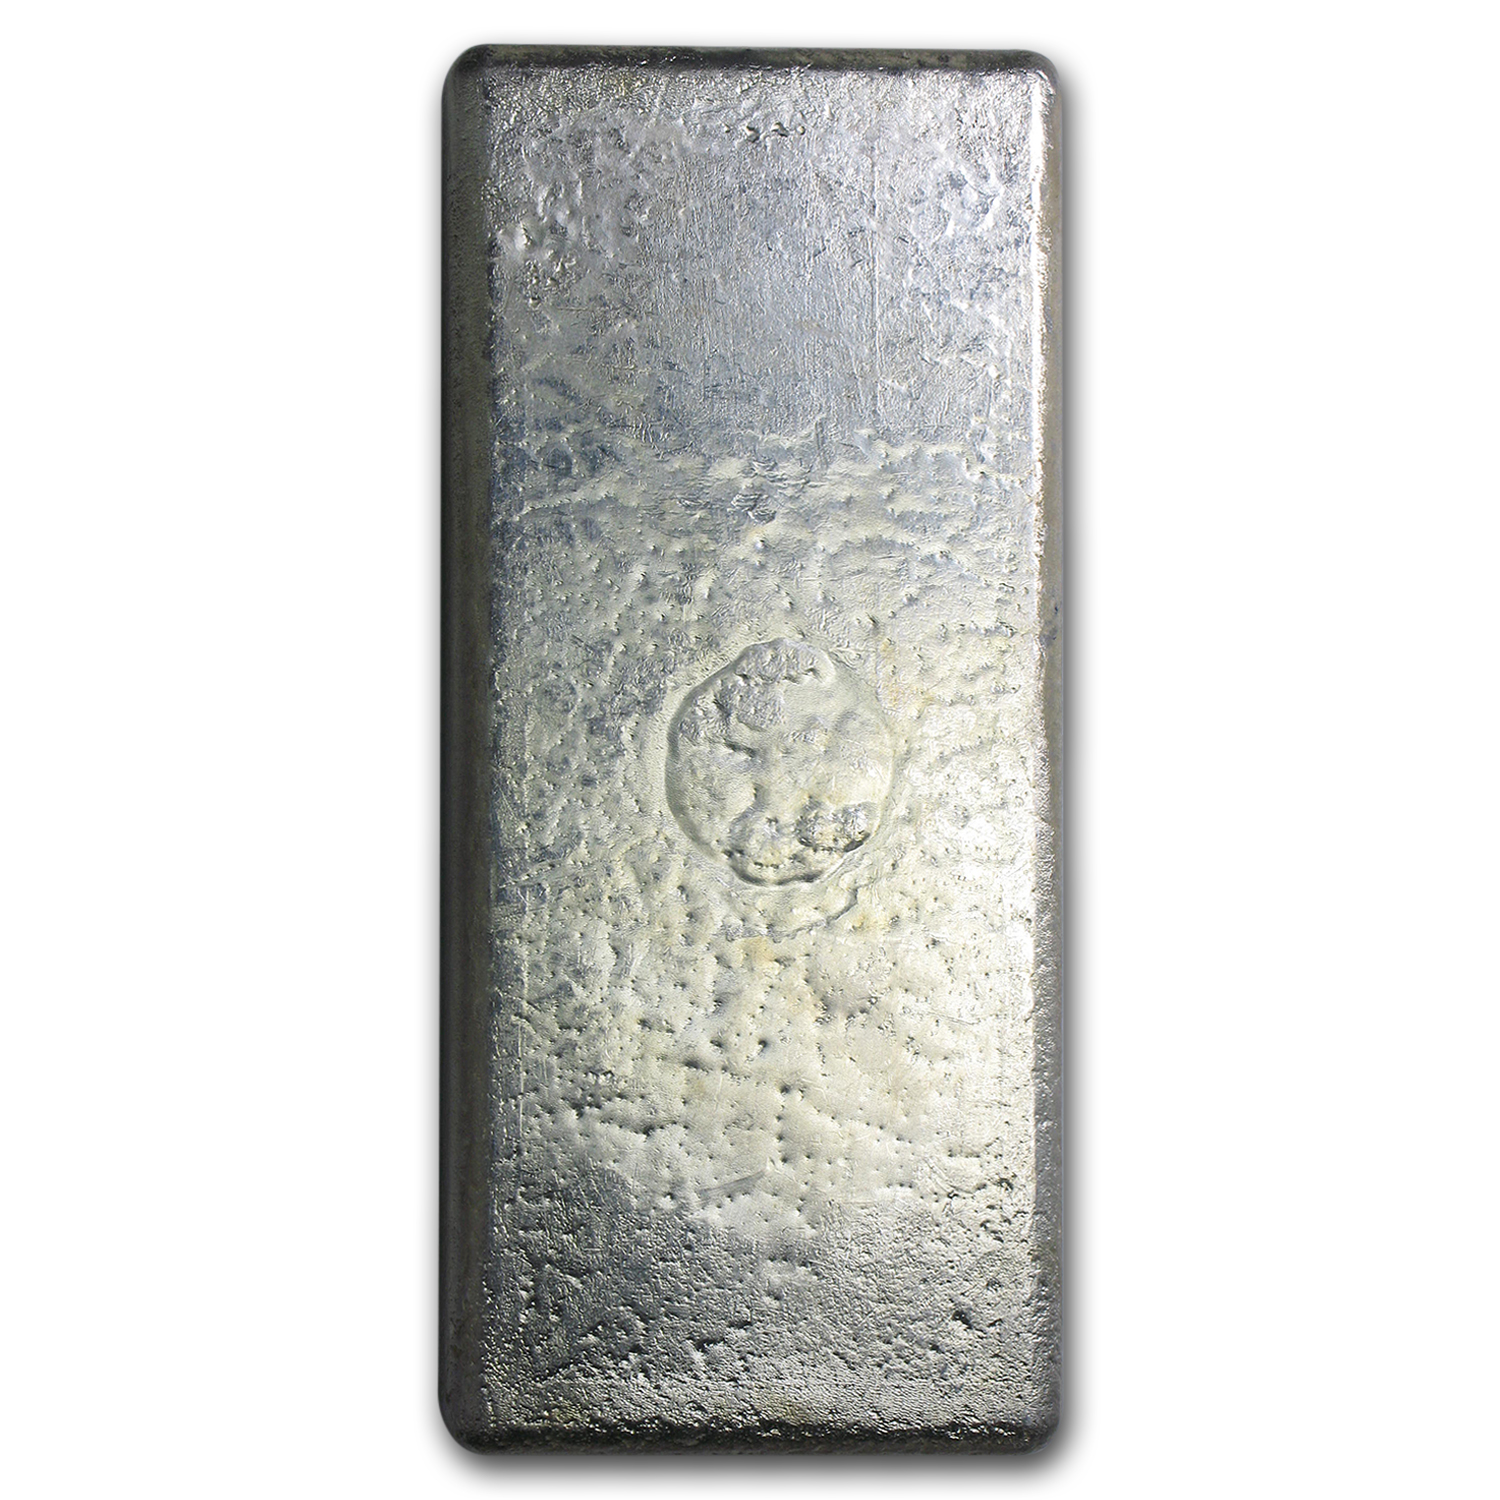 20 oz Silver Bar - Johnson Matthey (Vintage/Canada)